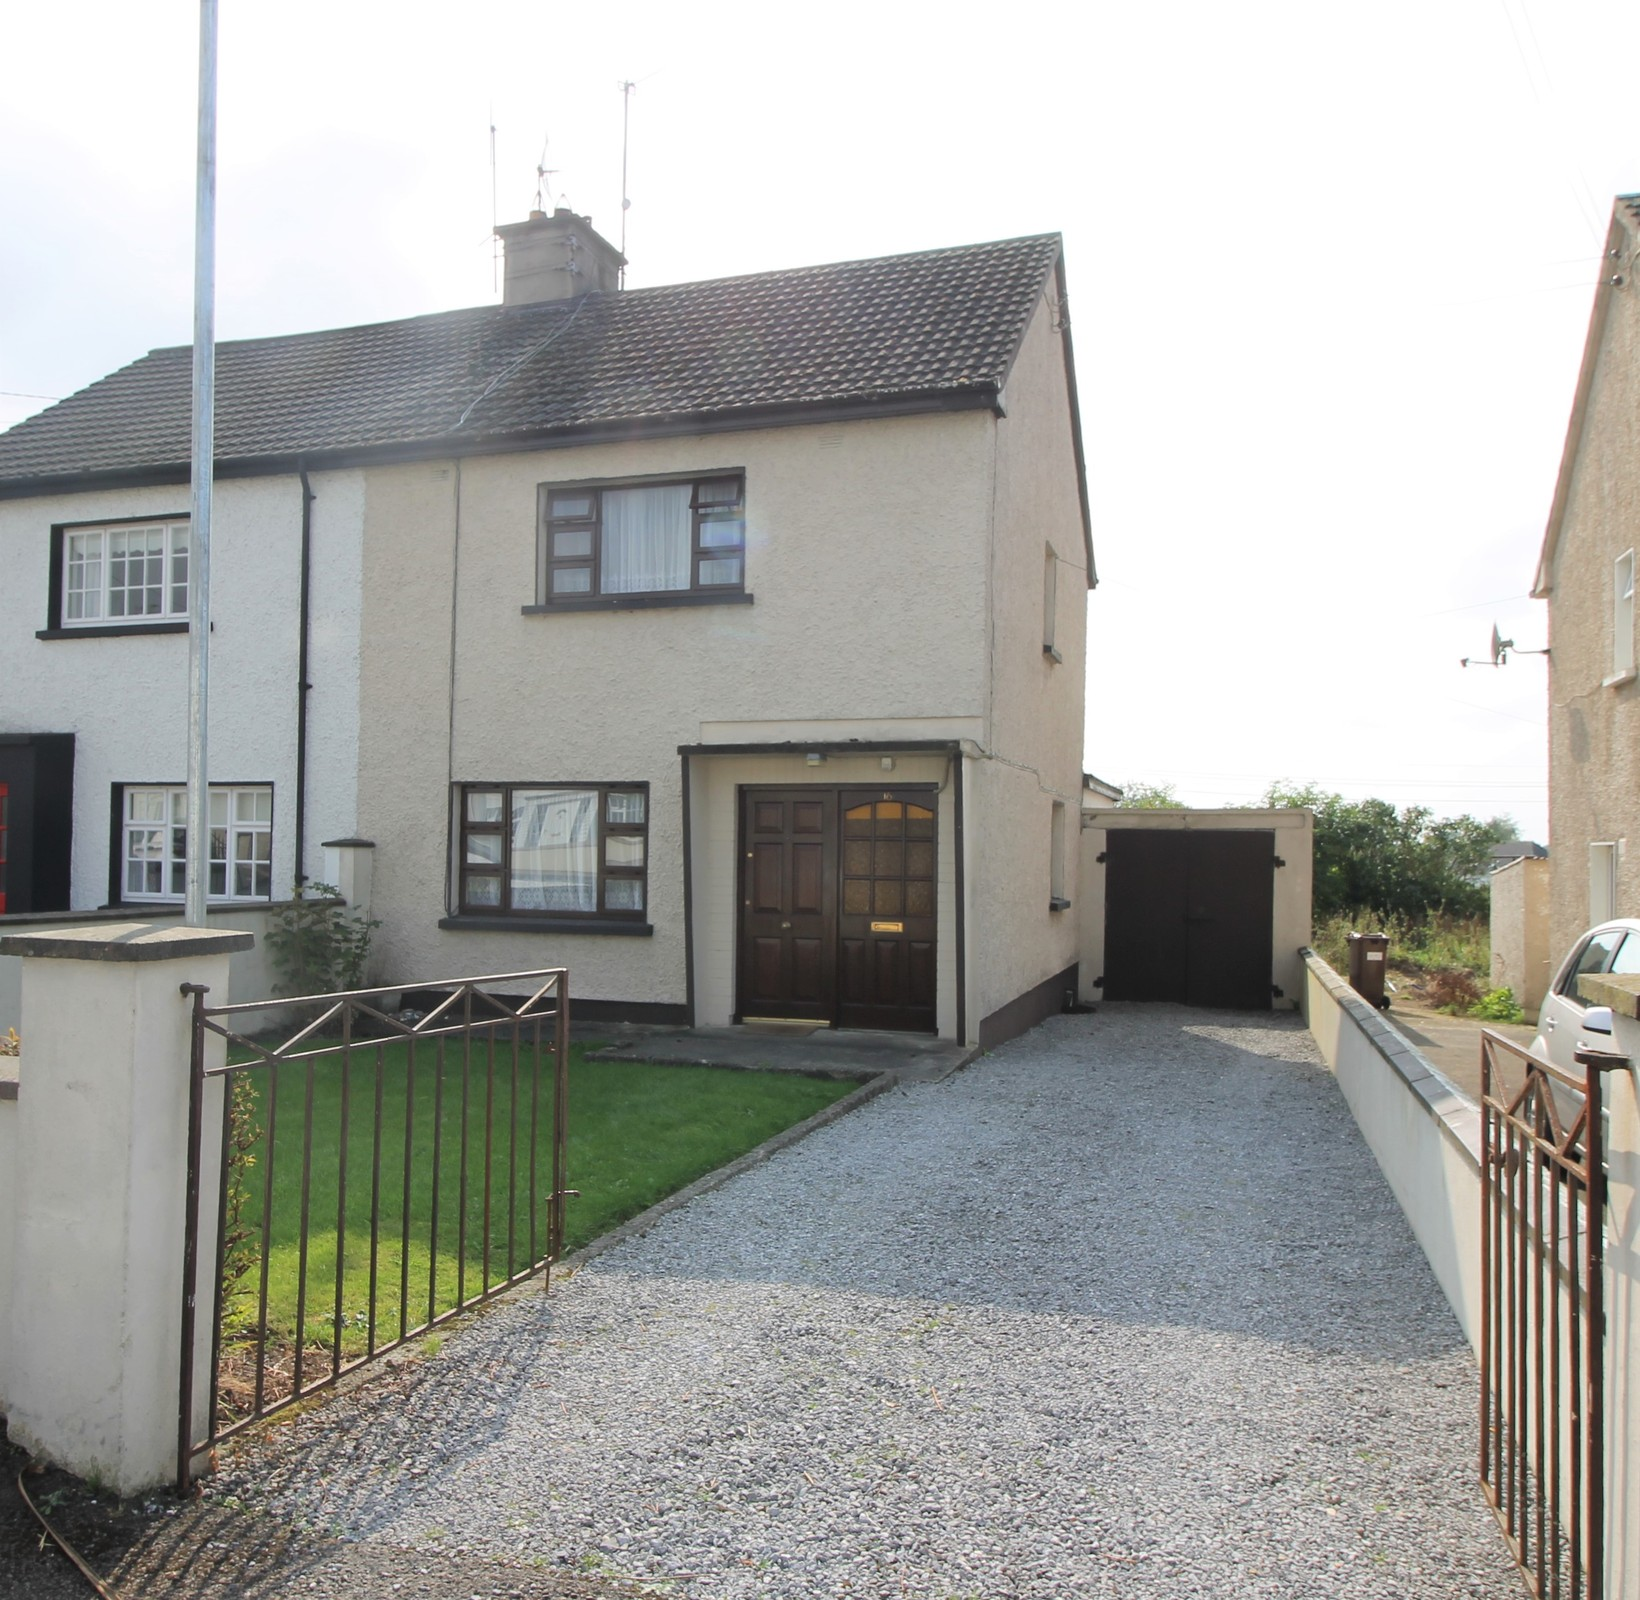 16 McDonagh Terrace, Littleton, Thurles, Co. Tipperary